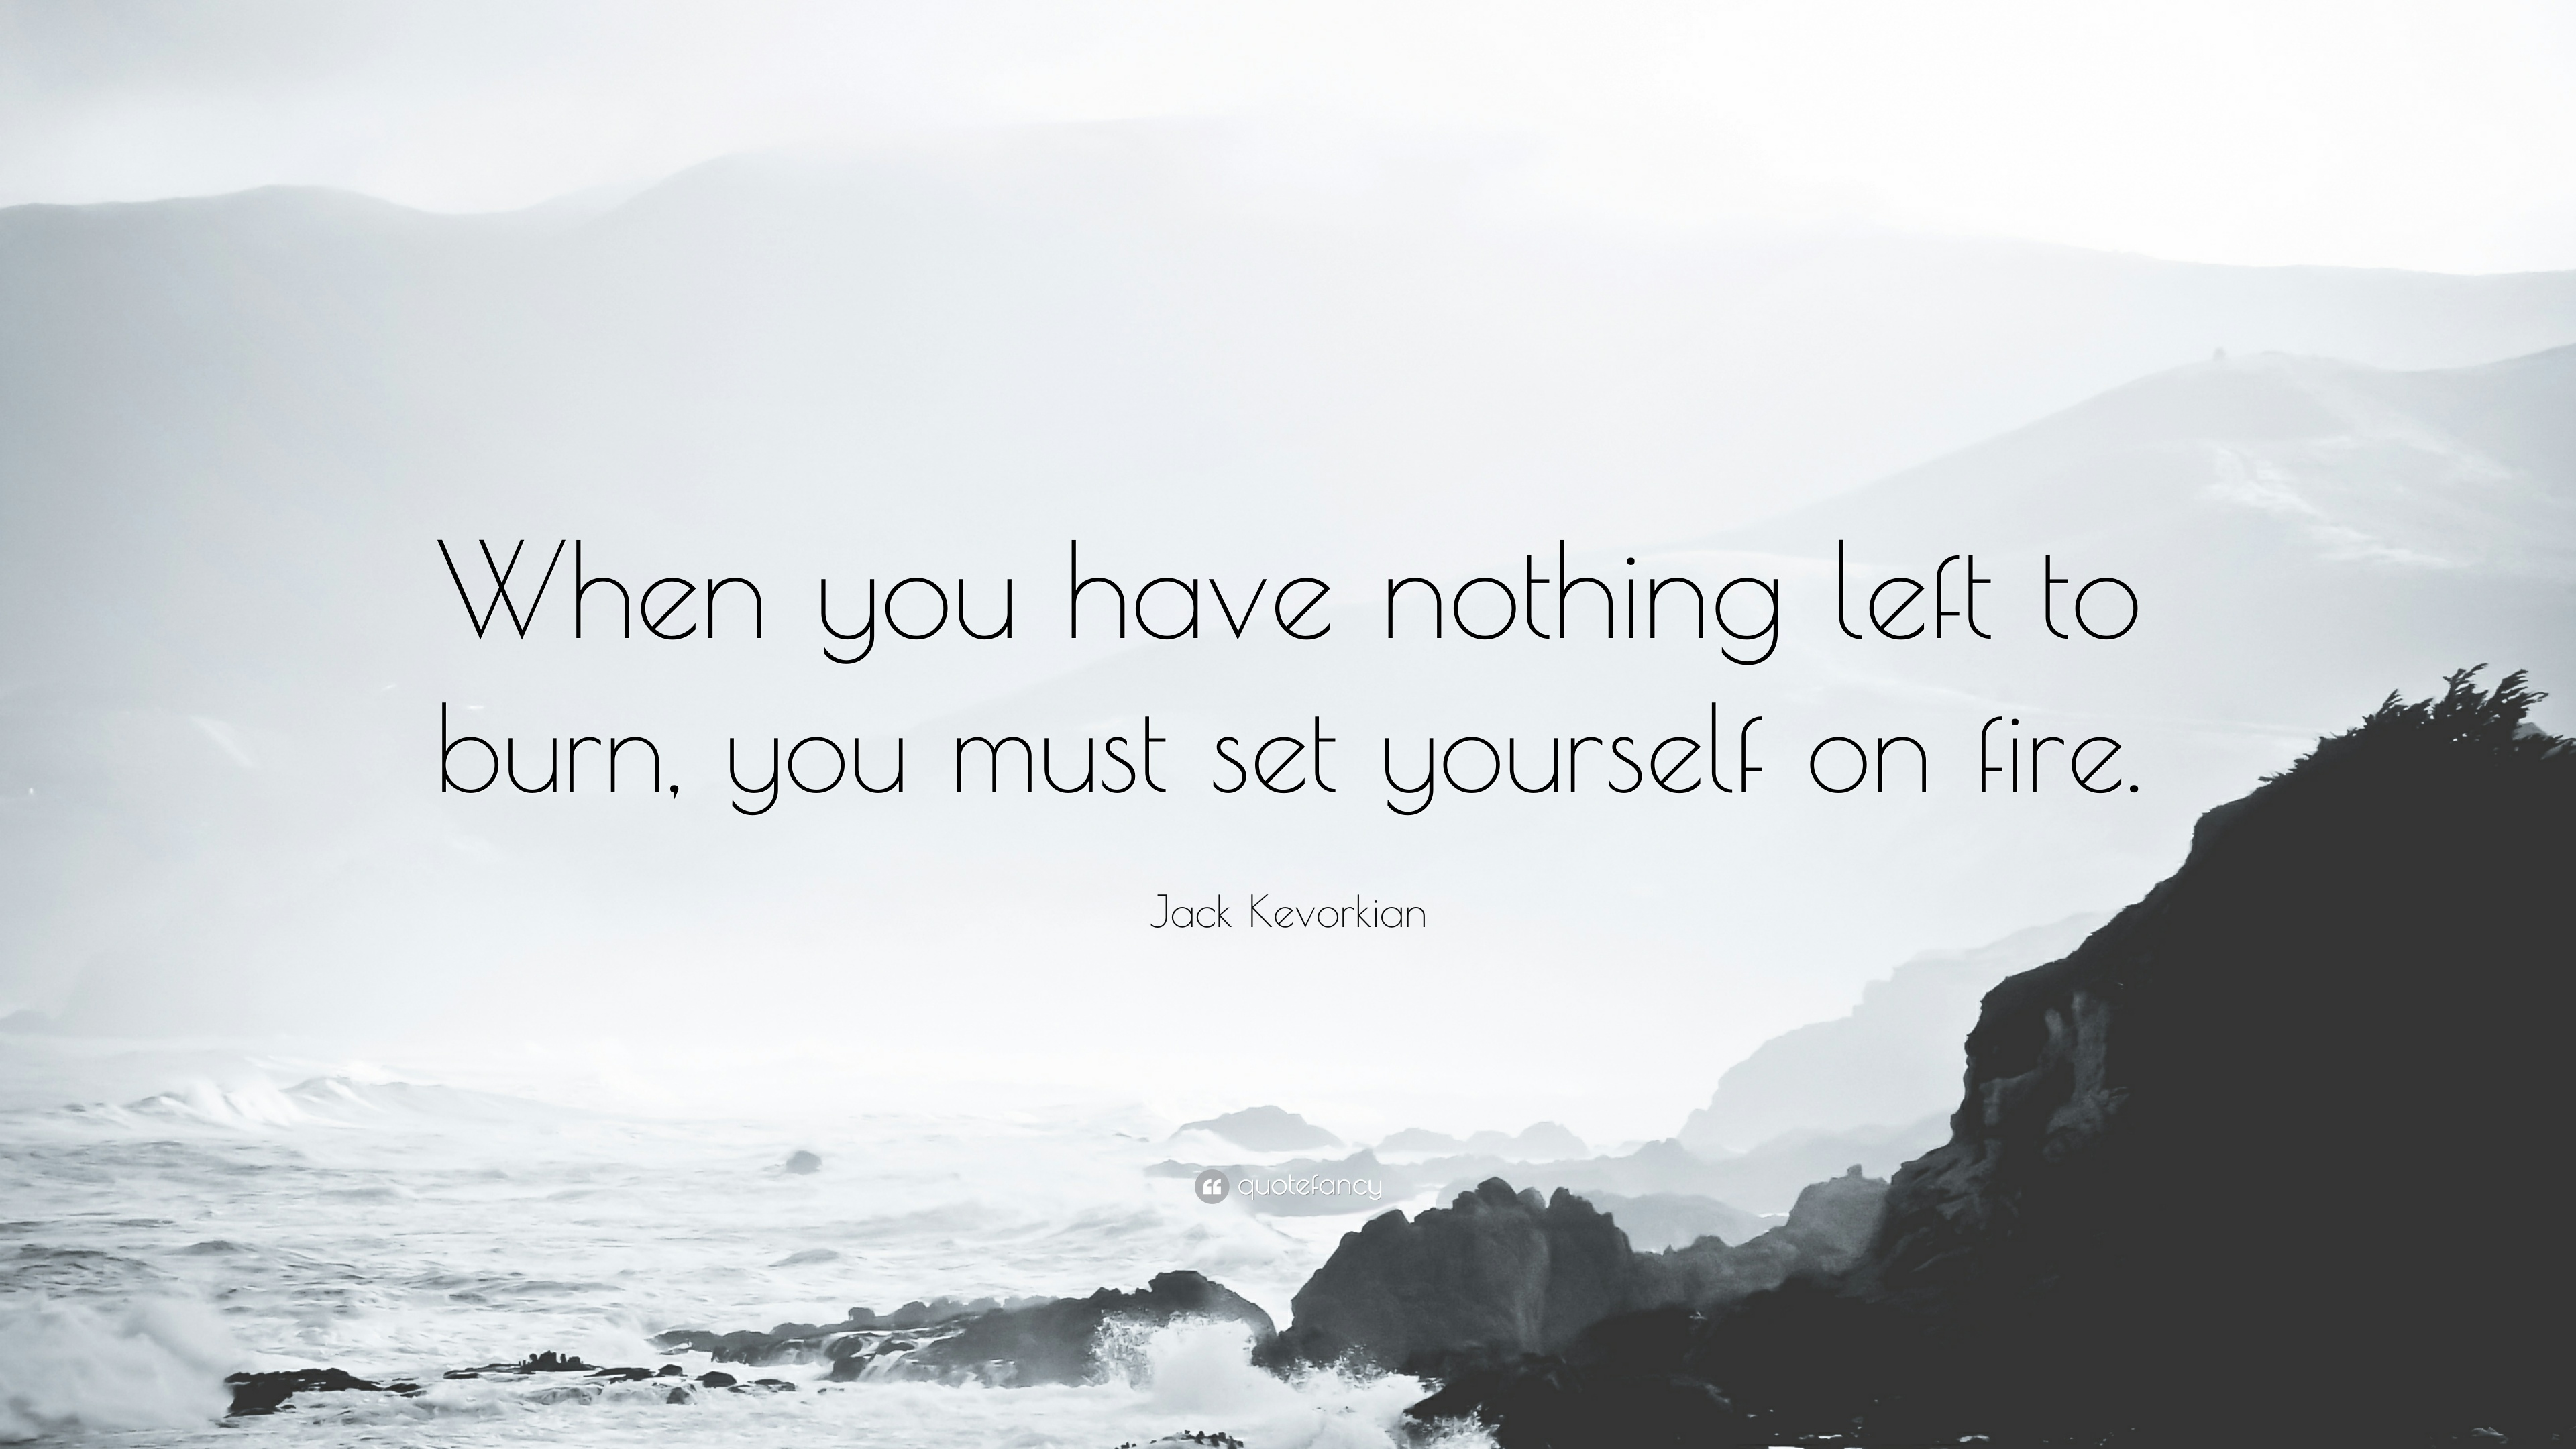 Jack Kevorkian Quotes Jack Kevorkian Quotes 71 Wallpapers  Quotefancy